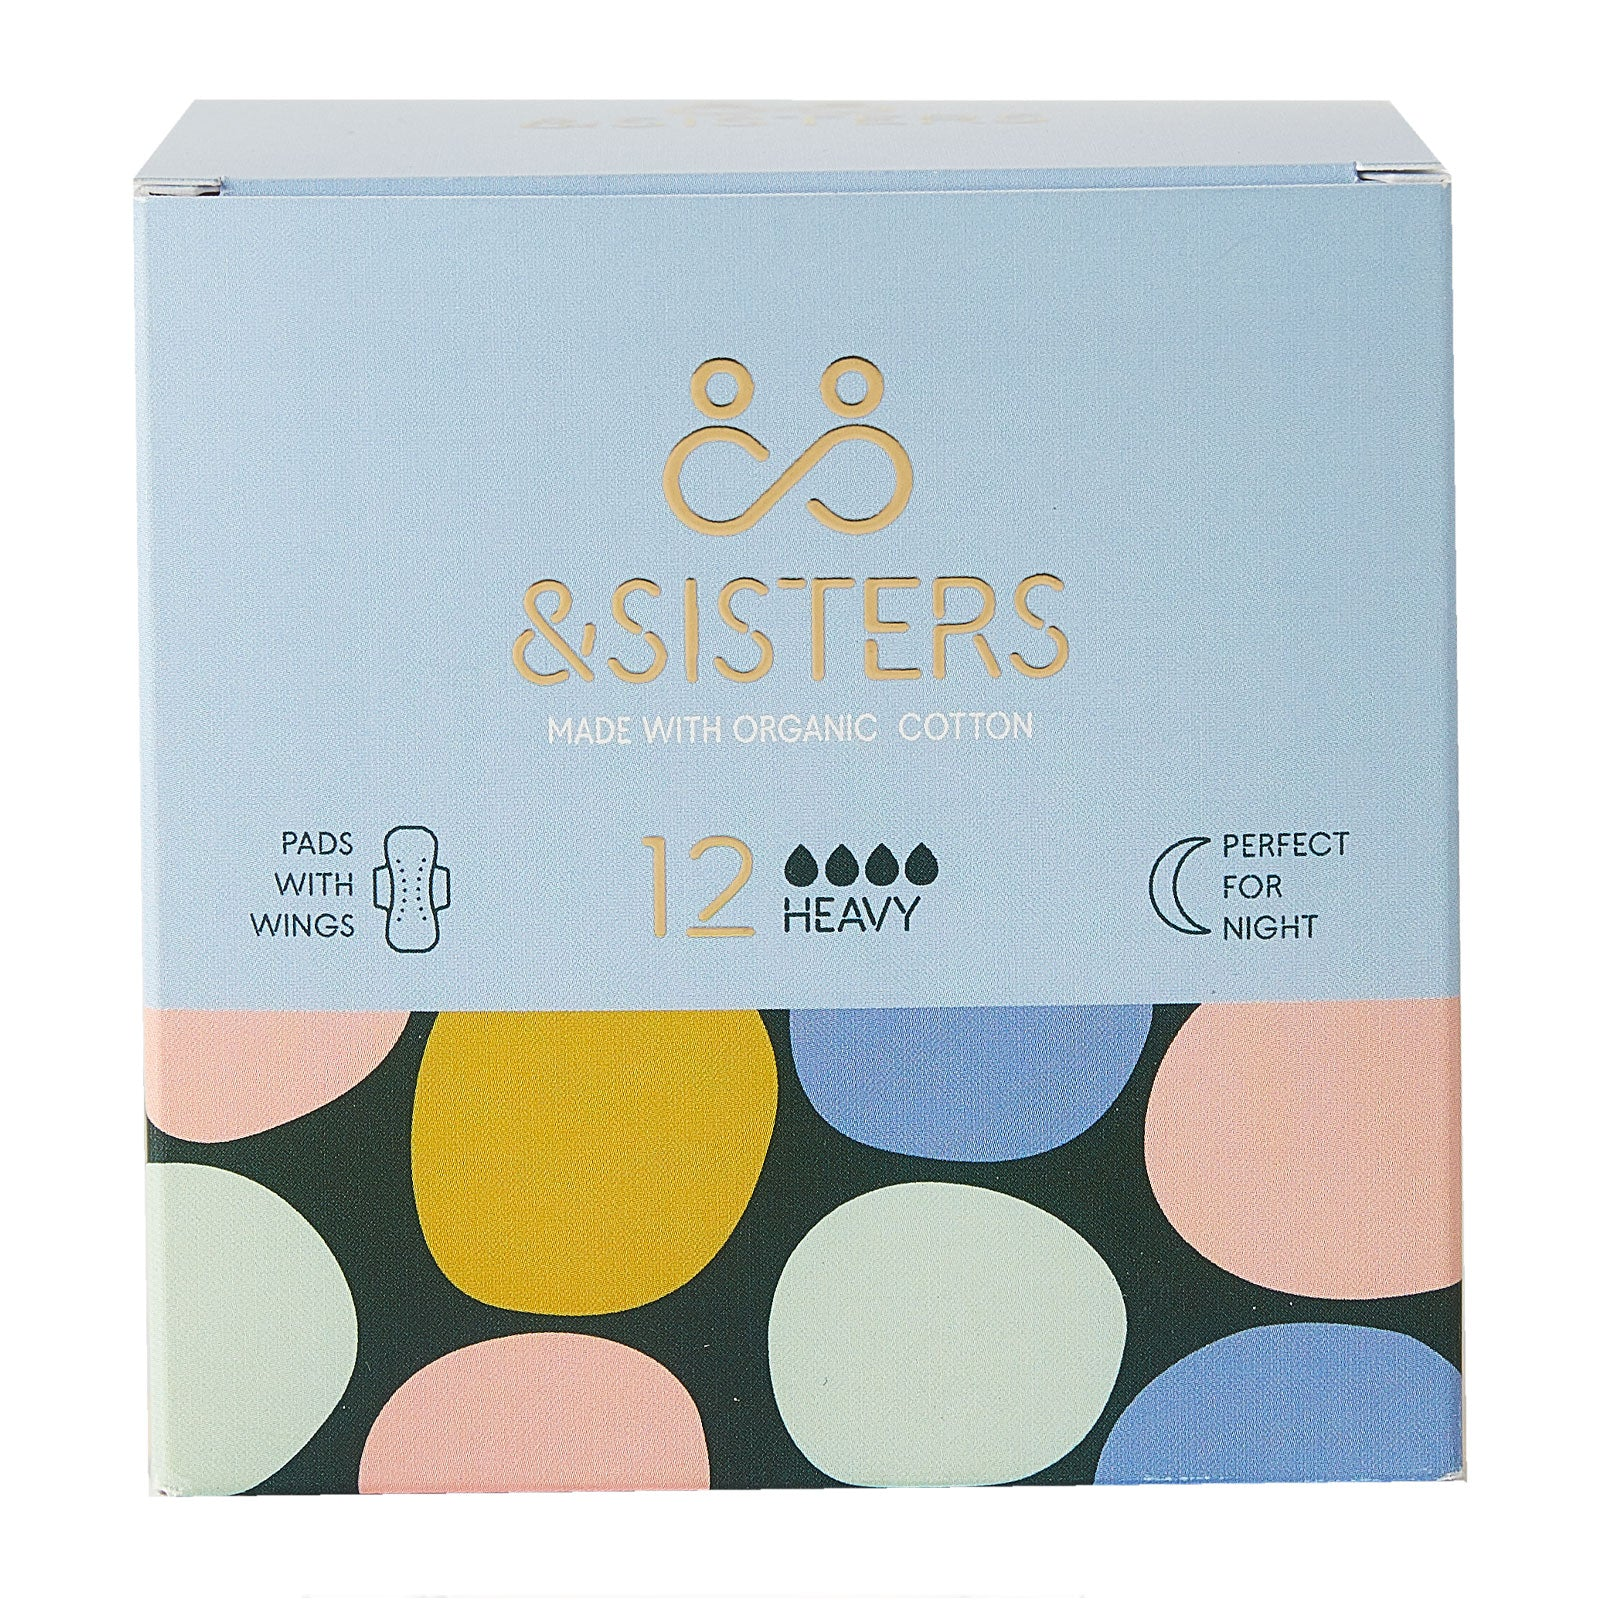 &SISTERS Sanitary Pads Heavy x 12